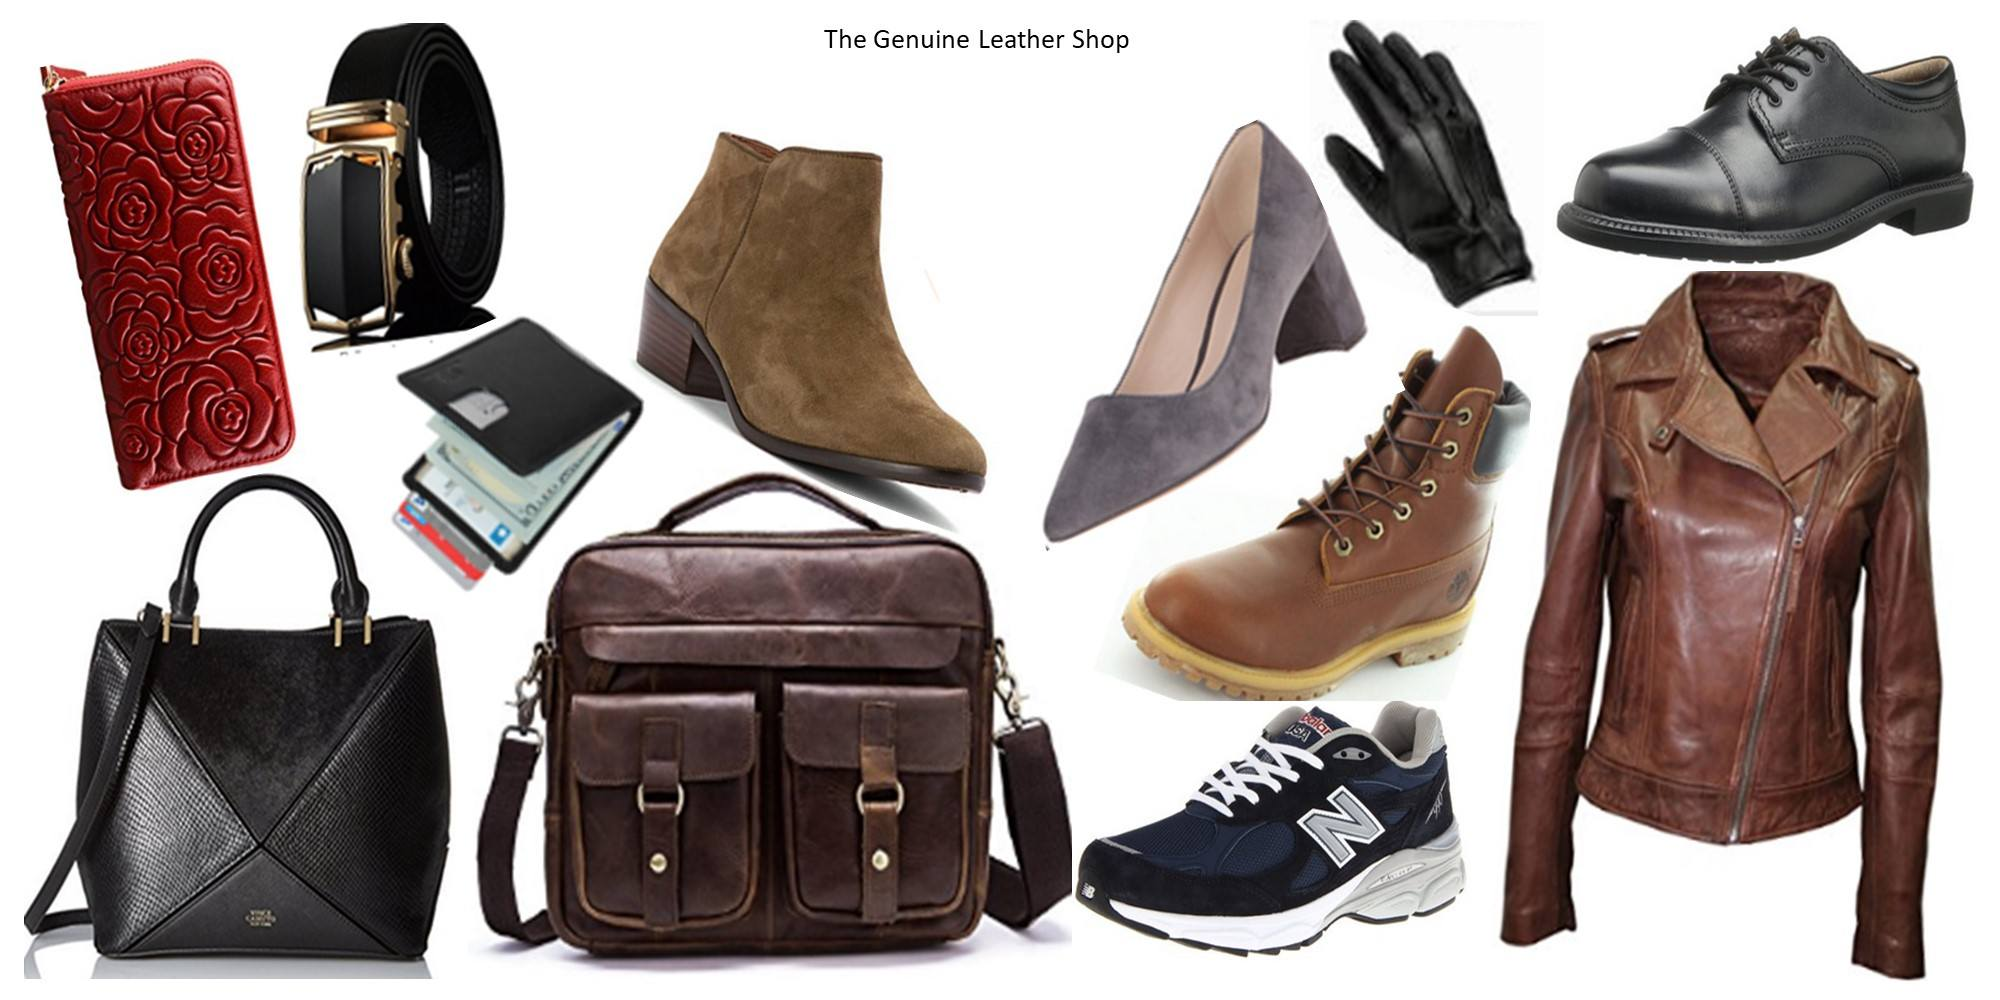 The Genuine Leather Shop Leather Products